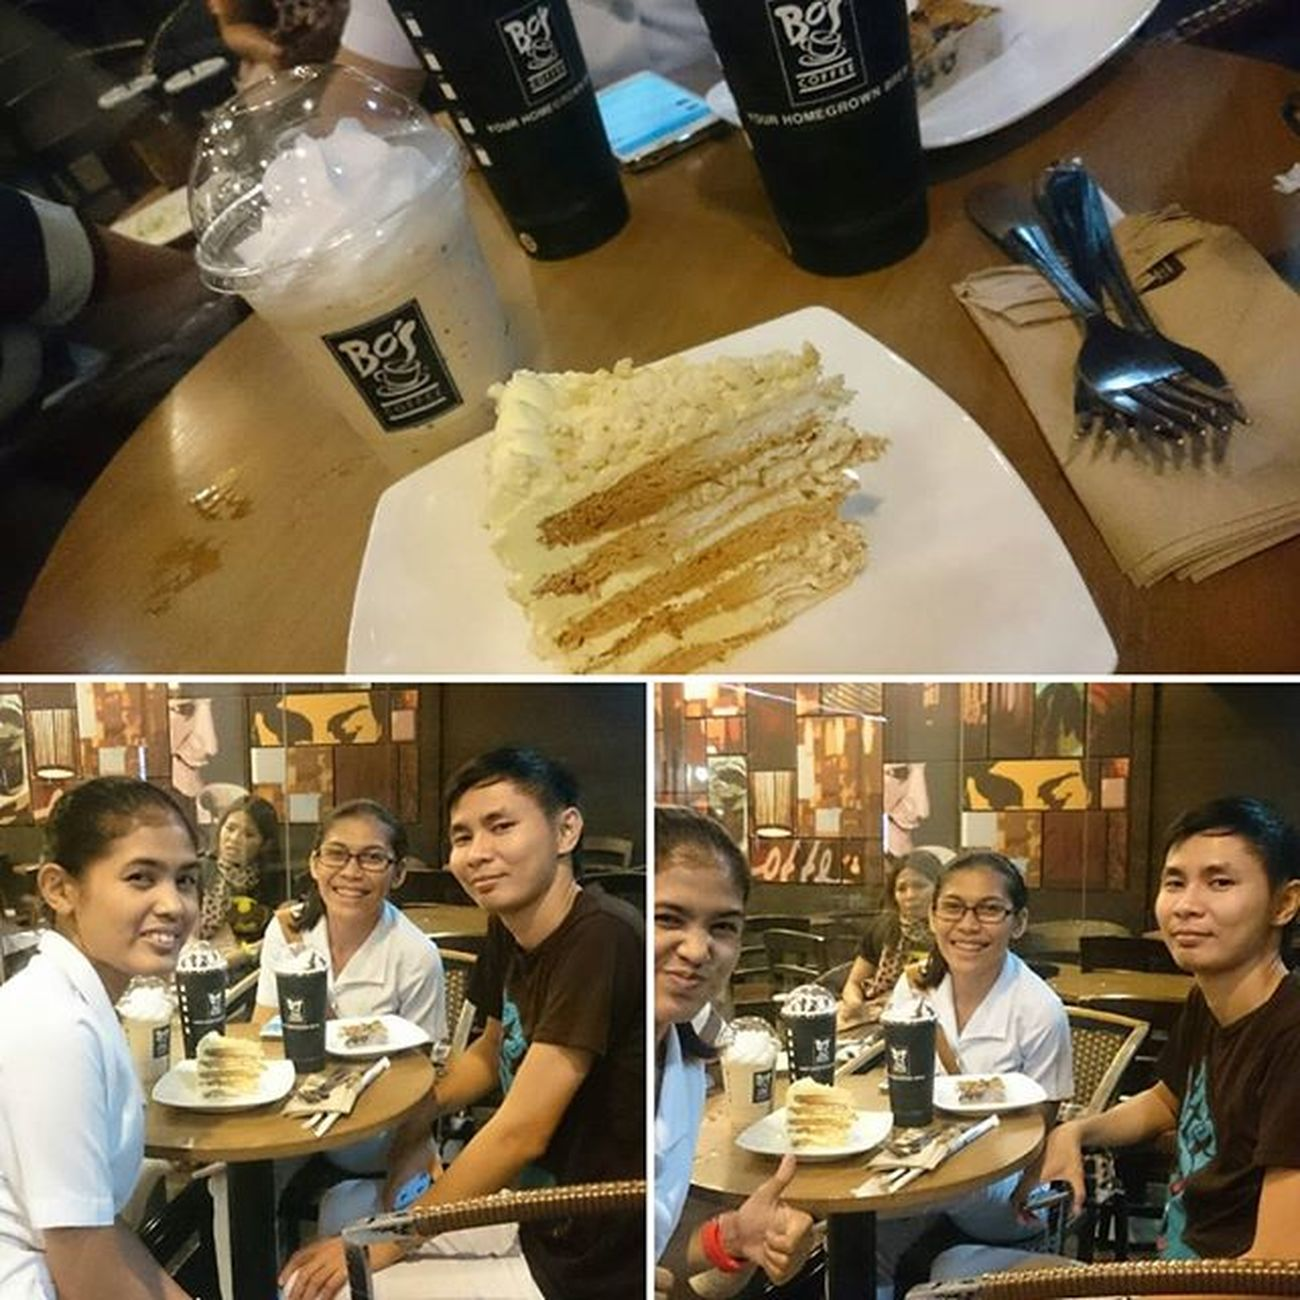 THE HOMEGROWN HOTSEAT DURING COLD WEATHER. Triángulo Threesome INaughty Rodelkogs Emitthemenace PlainHappiness Coffeebreaky Revelbar Sansrival Caffeinemania Latepost Afterdinner Sony SonyGLens Sonyverse @sonyphinc @sony